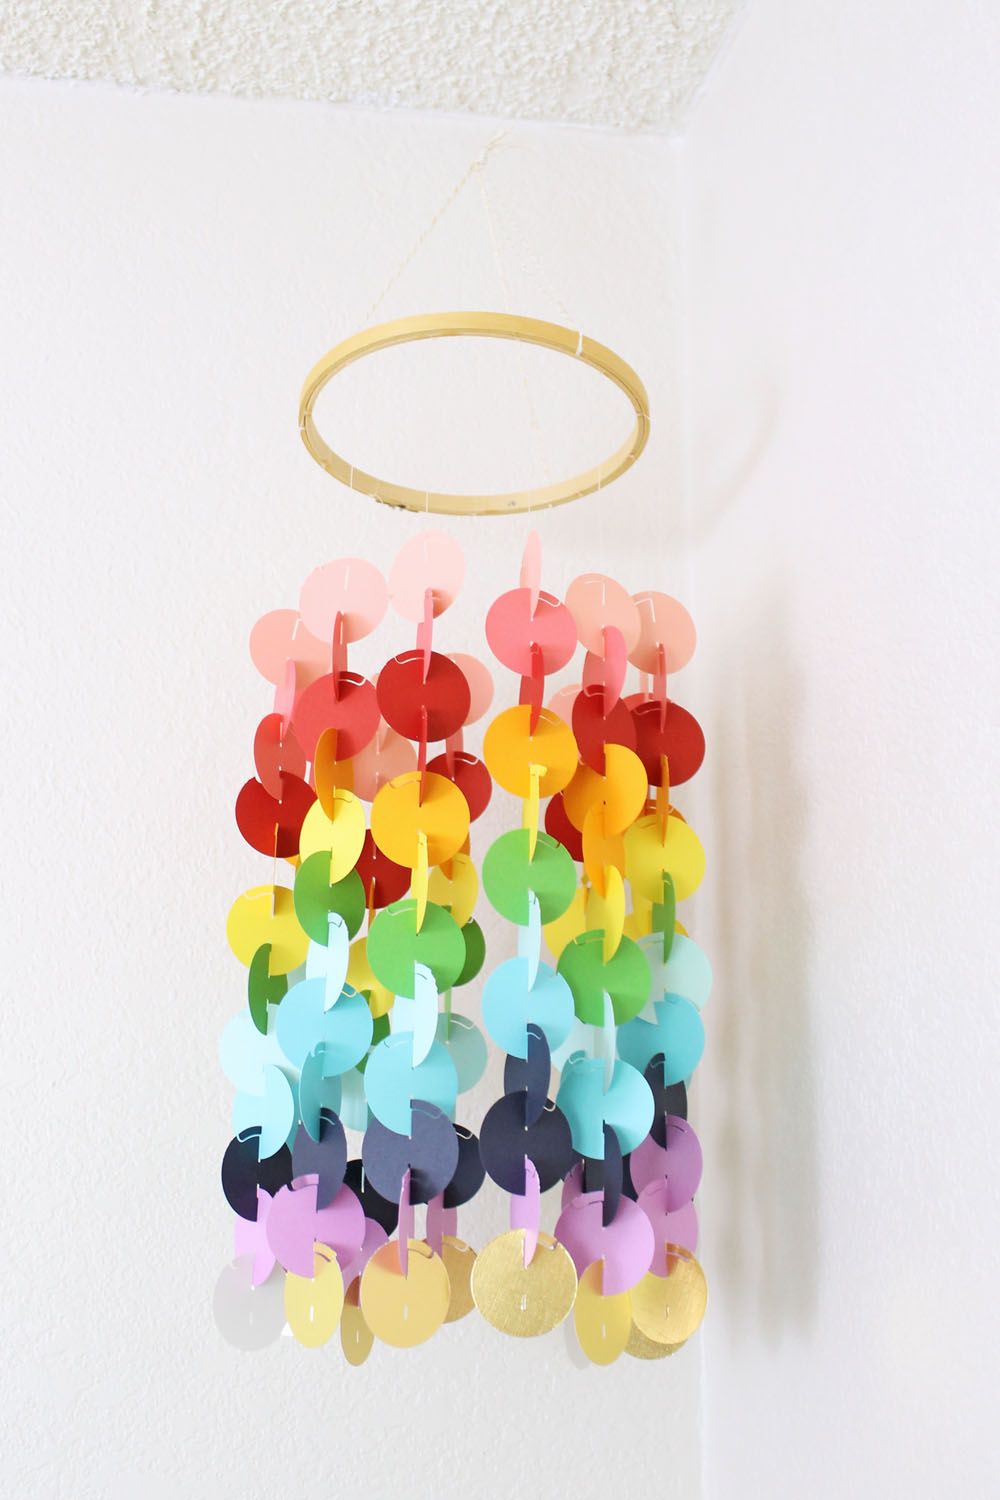 Circle Garland Mobile by Laura Silva for We R Memory Keepers